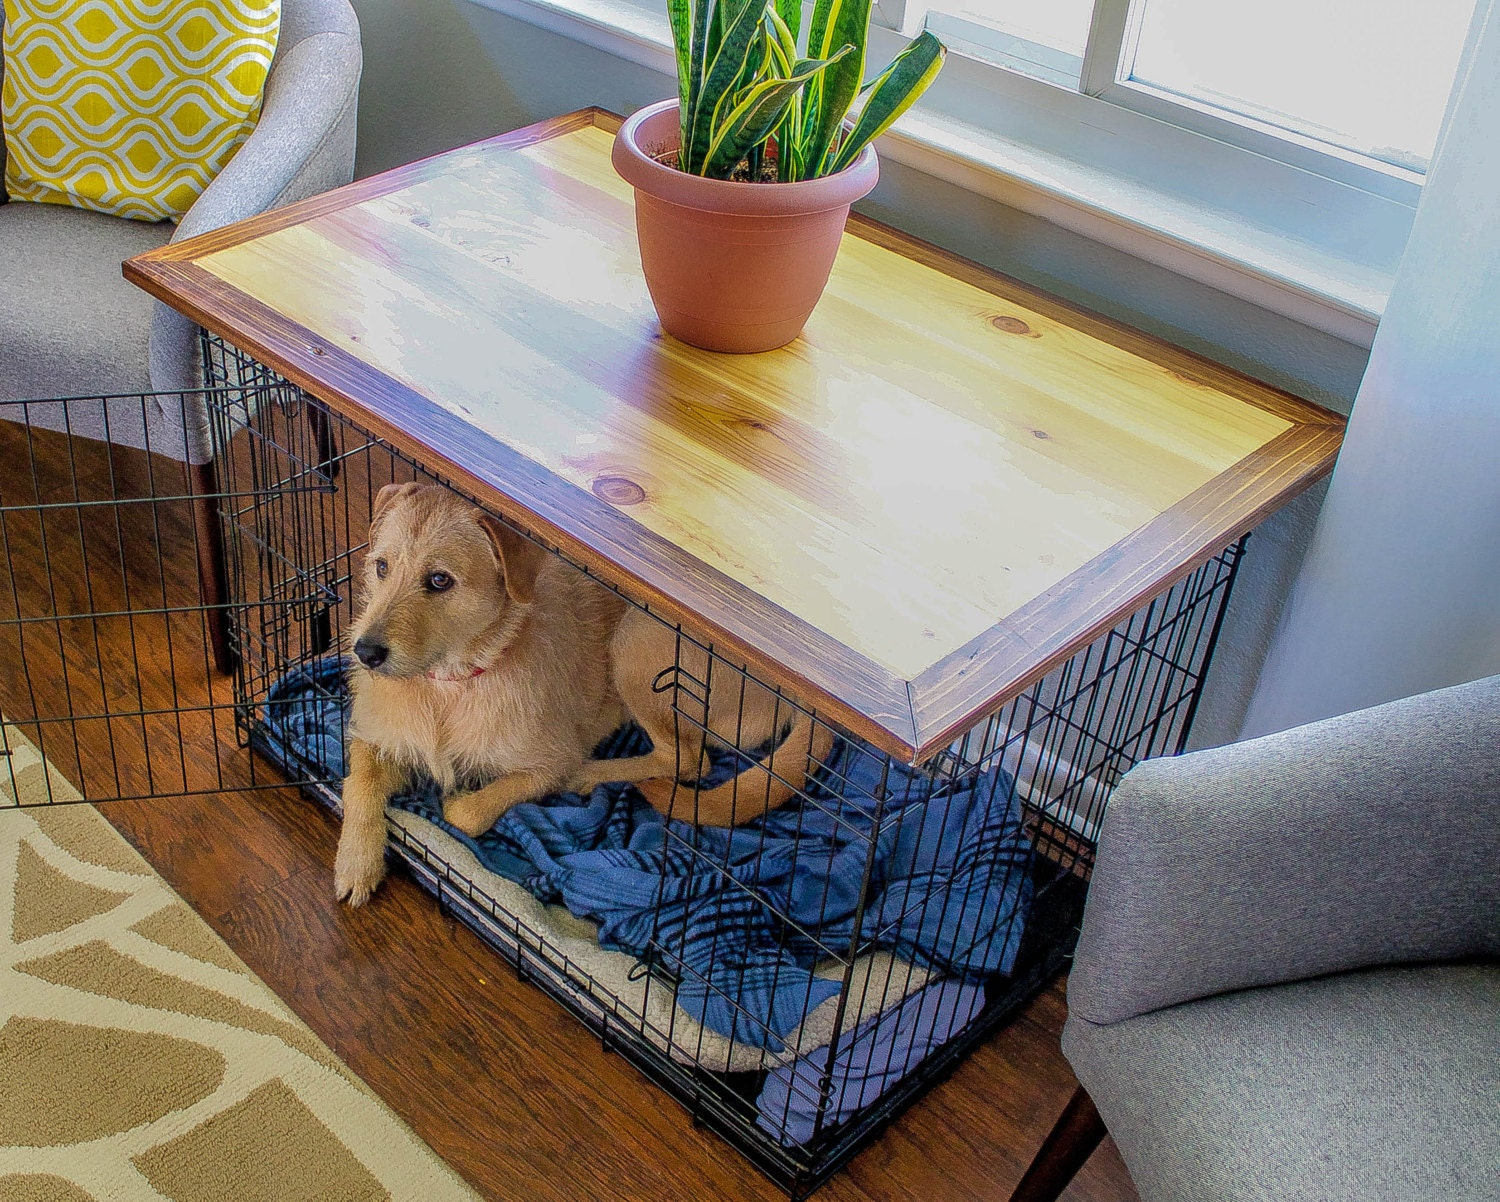 Dog crib for sale philippines - Dog Crate Topper End Table Living Room Furniture Home Decor Dog Crate Pet Accessories Dog Accessories